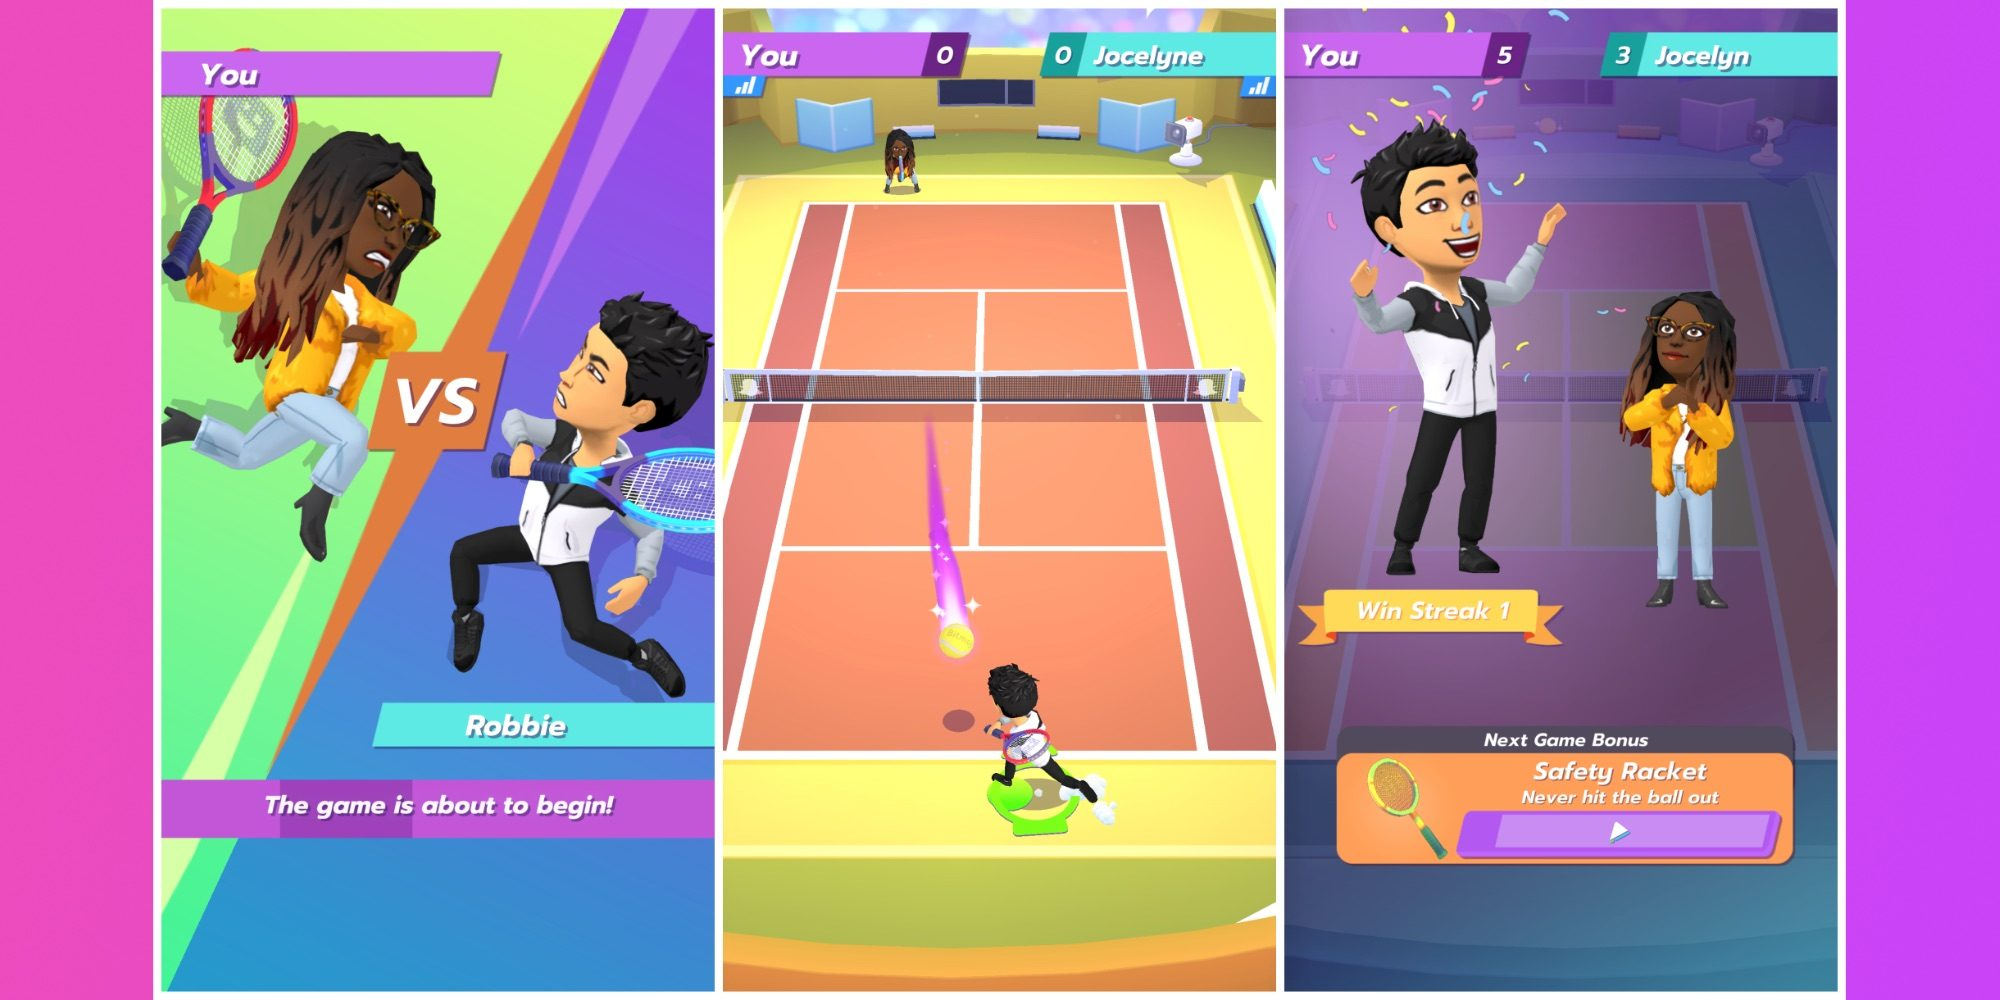 Snapchat announces a new game called Bitmoji Tennis for Wimbledon fans